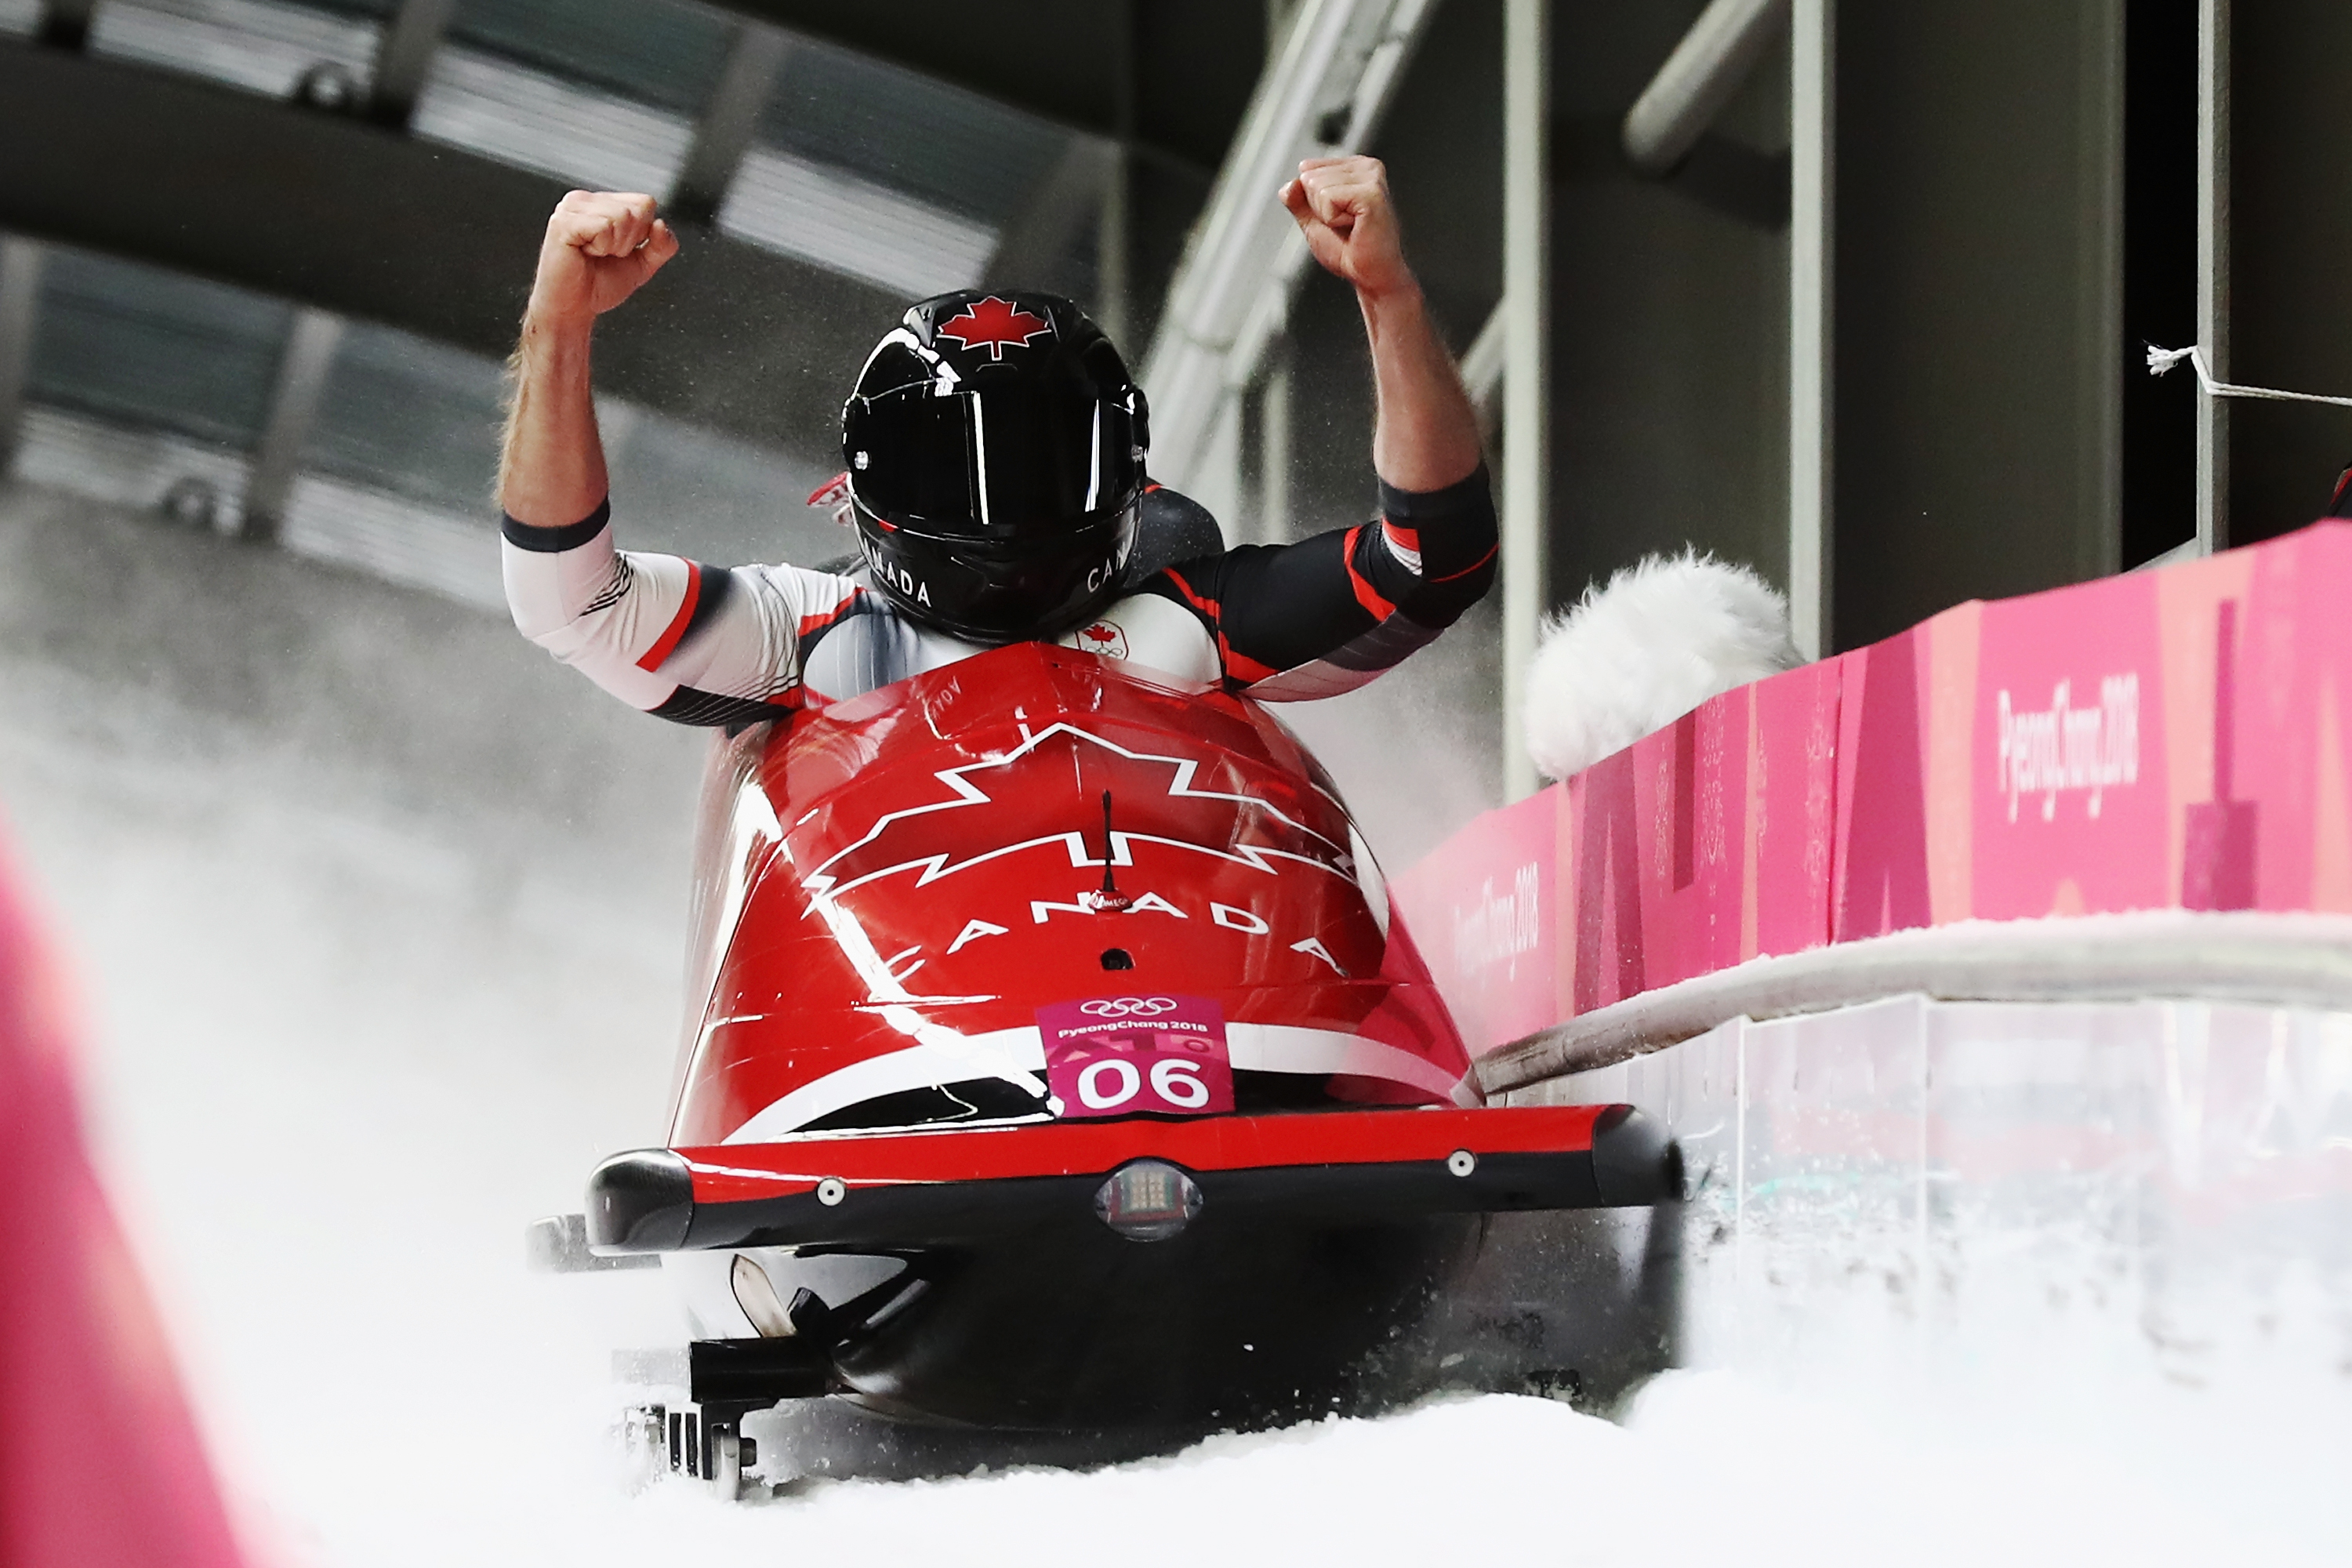 Justin Kripps and Alexander Kopacz of Canada celebrate as they win joint gold during the Men's 2-Man Bobsleigh on day 10 of the PyeongChang 2018 Winter Olympic Games at Olympic Sliding Centre on February 19, 2018 in Pyeongchang-gun, South Korea.